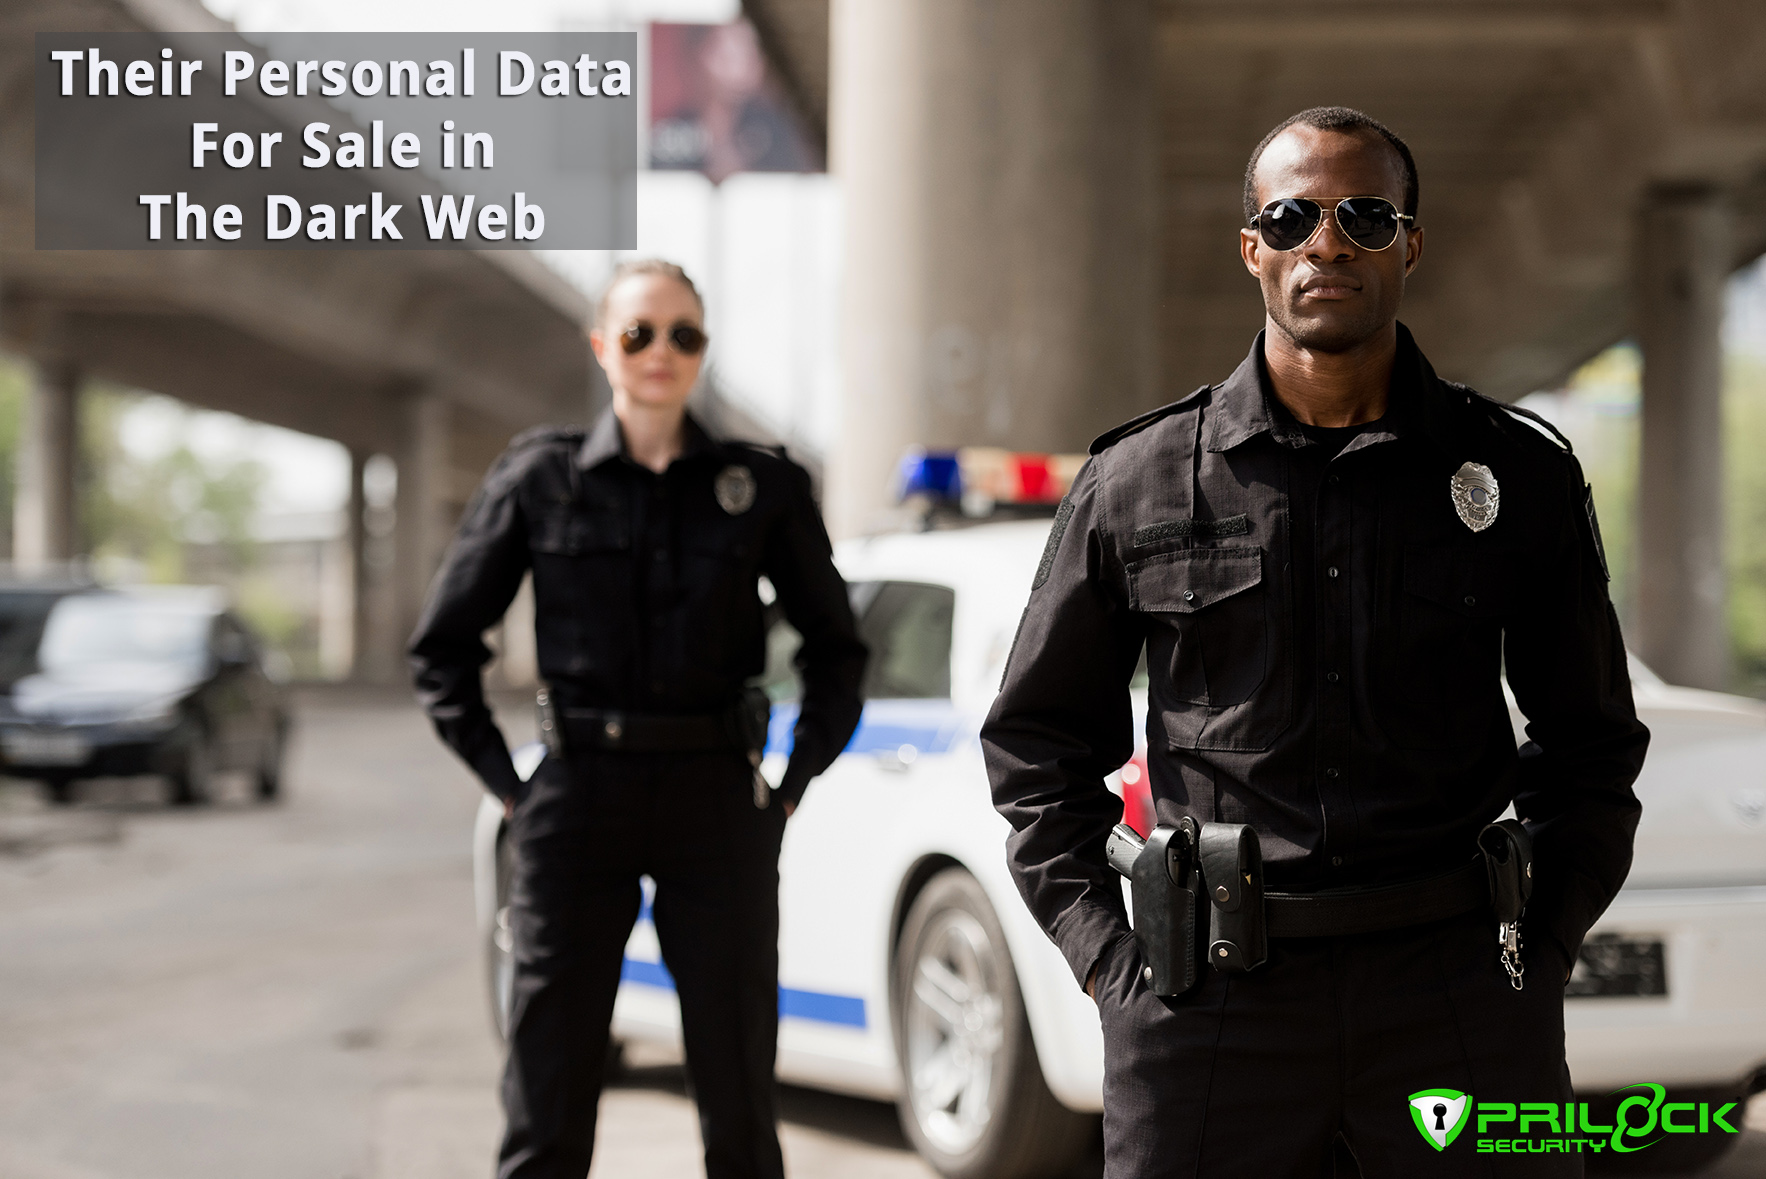 Prilock police FBI agent data breach exposed compromised data identity theft pii iot gdpr protect and serve cybersecurity secure security awareness training dark web